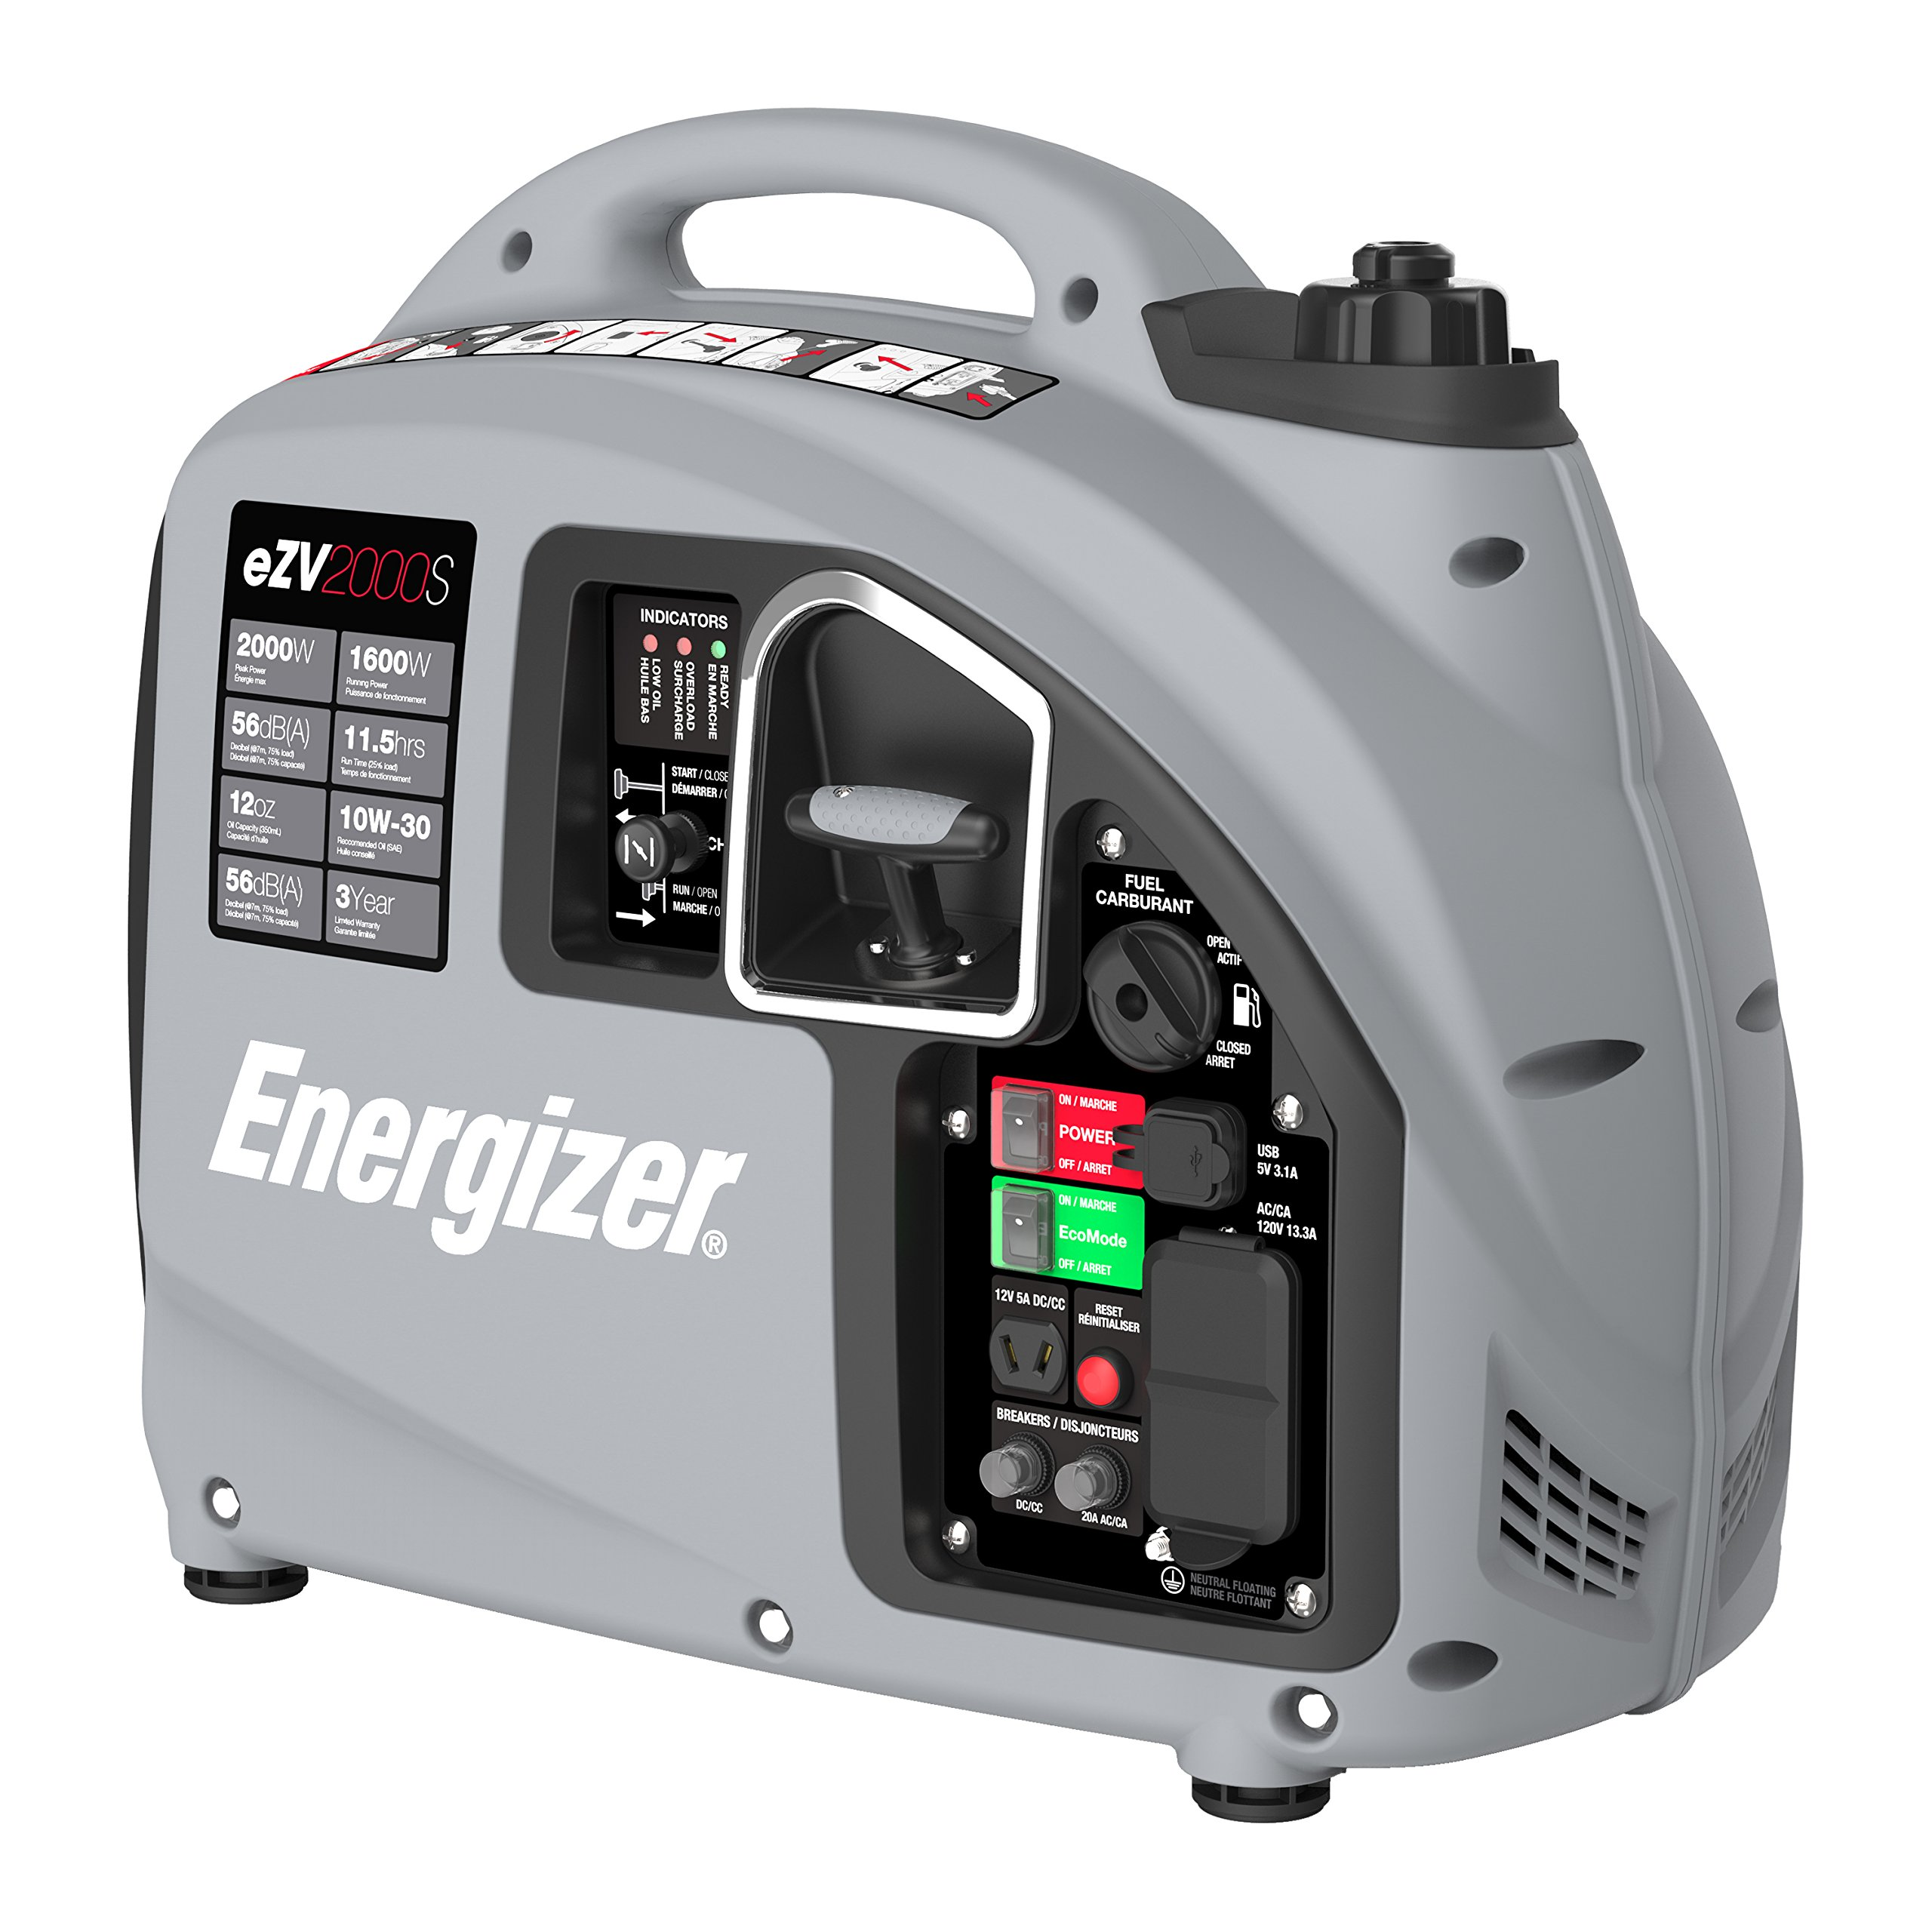 Energizer EZV2000P 2000W Gas Powered Portable Inverter